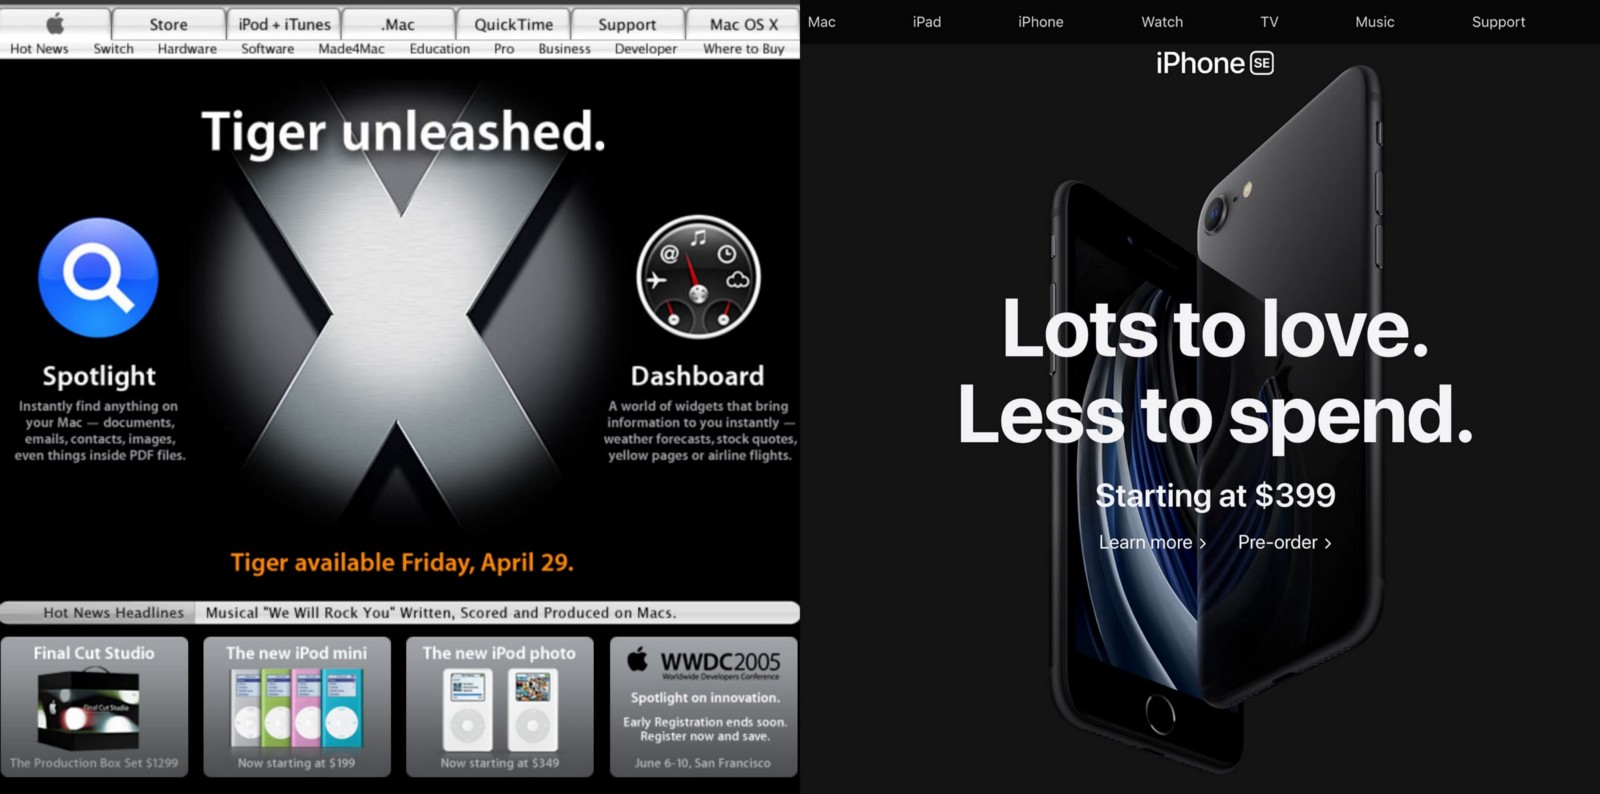 The homepage from 2005 on the left uses skeuomorphic design while the 2020 homepage uses flat design and slick photography